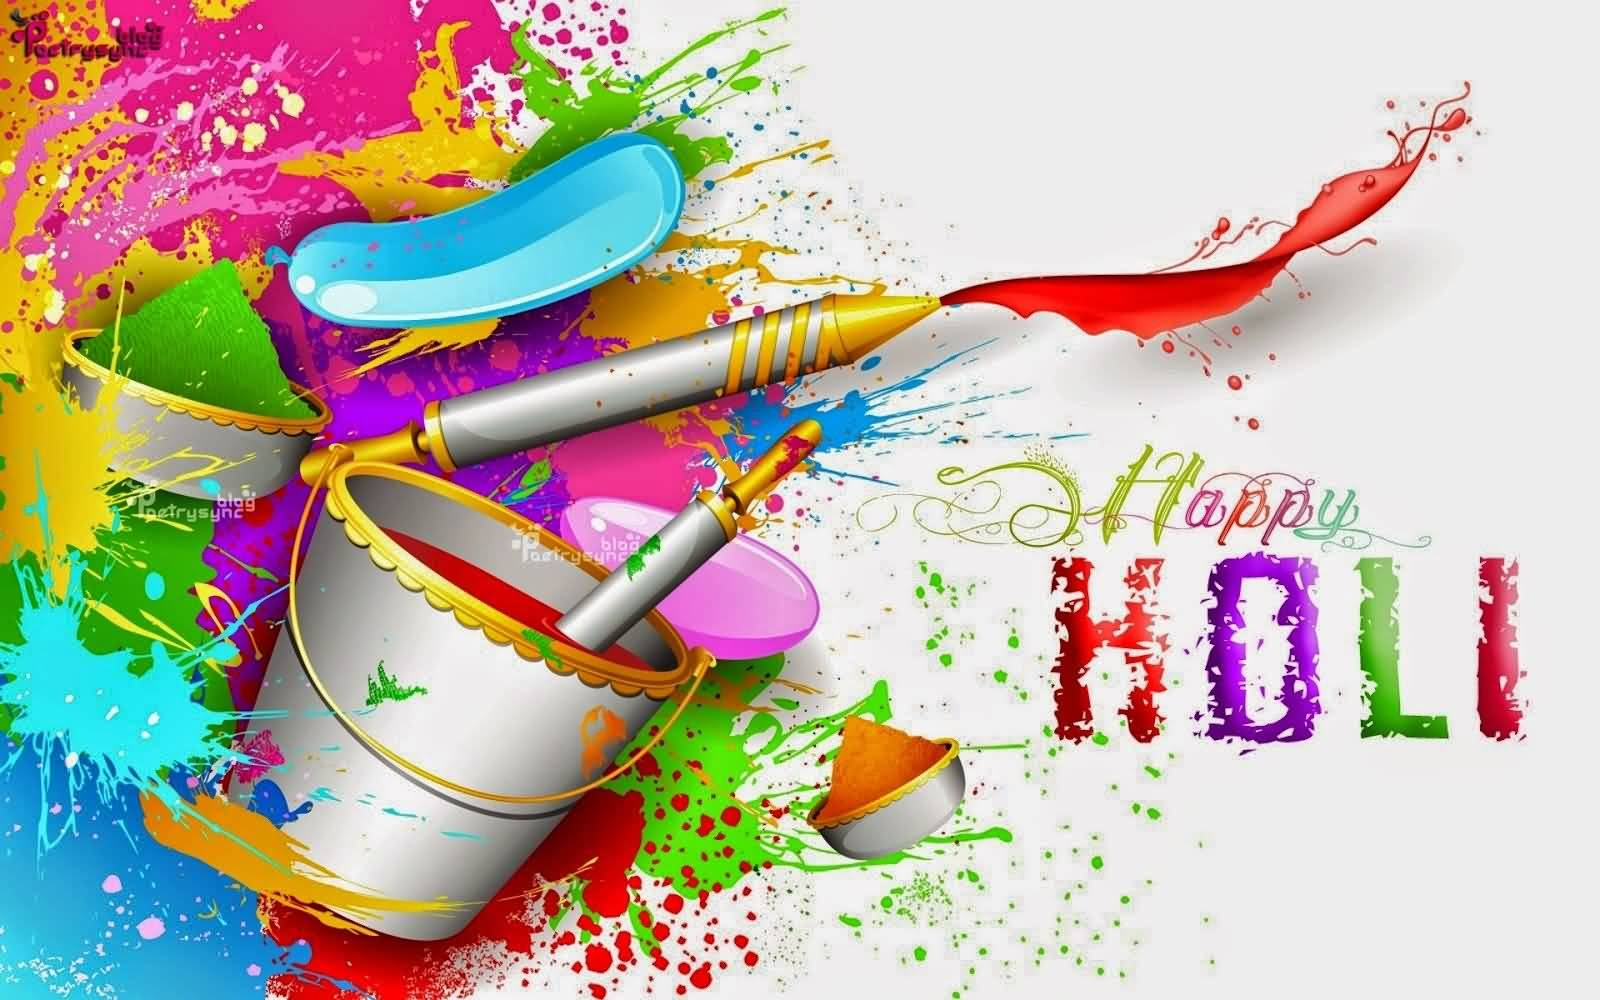 Fabulous Happy Holi Pics